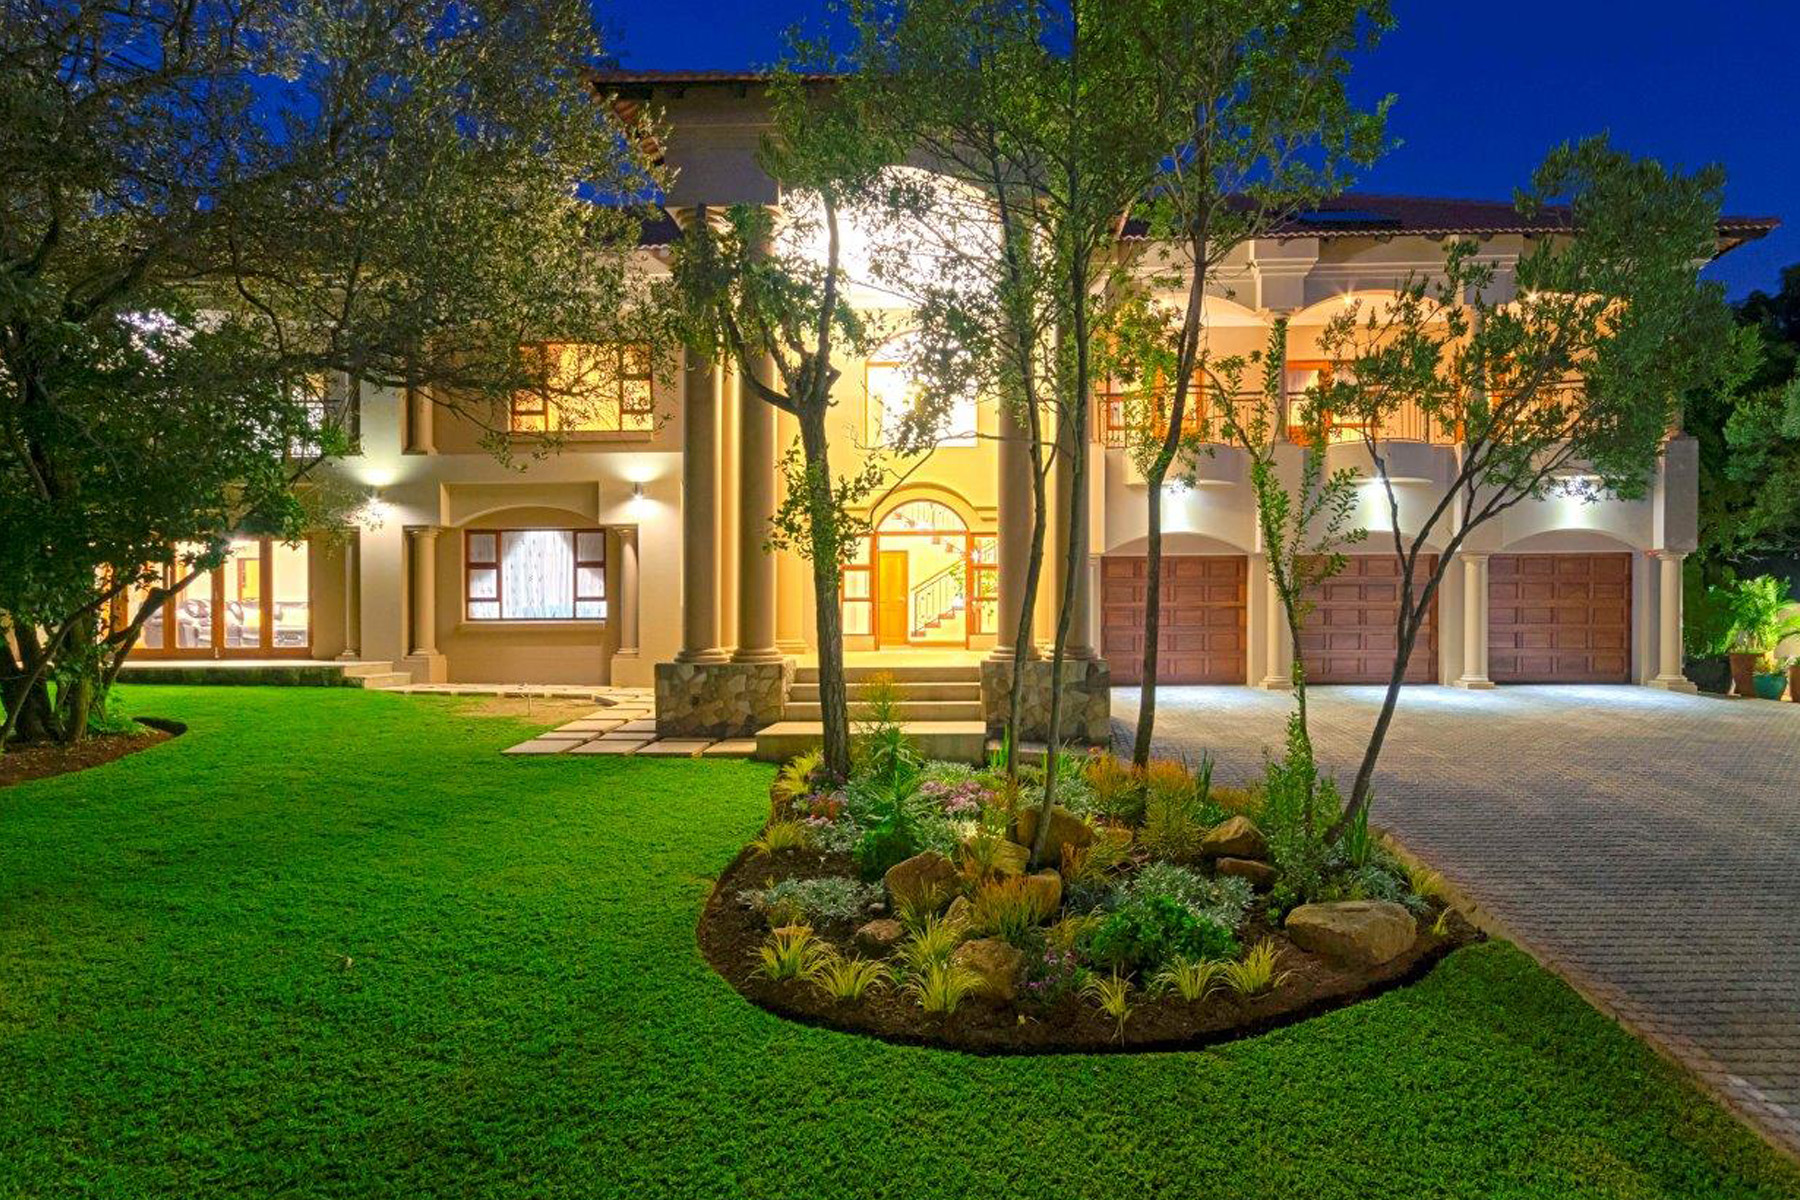 Single Family Home for Sale at North Riding Johannesburg, Gauteng, 2188 South Africa